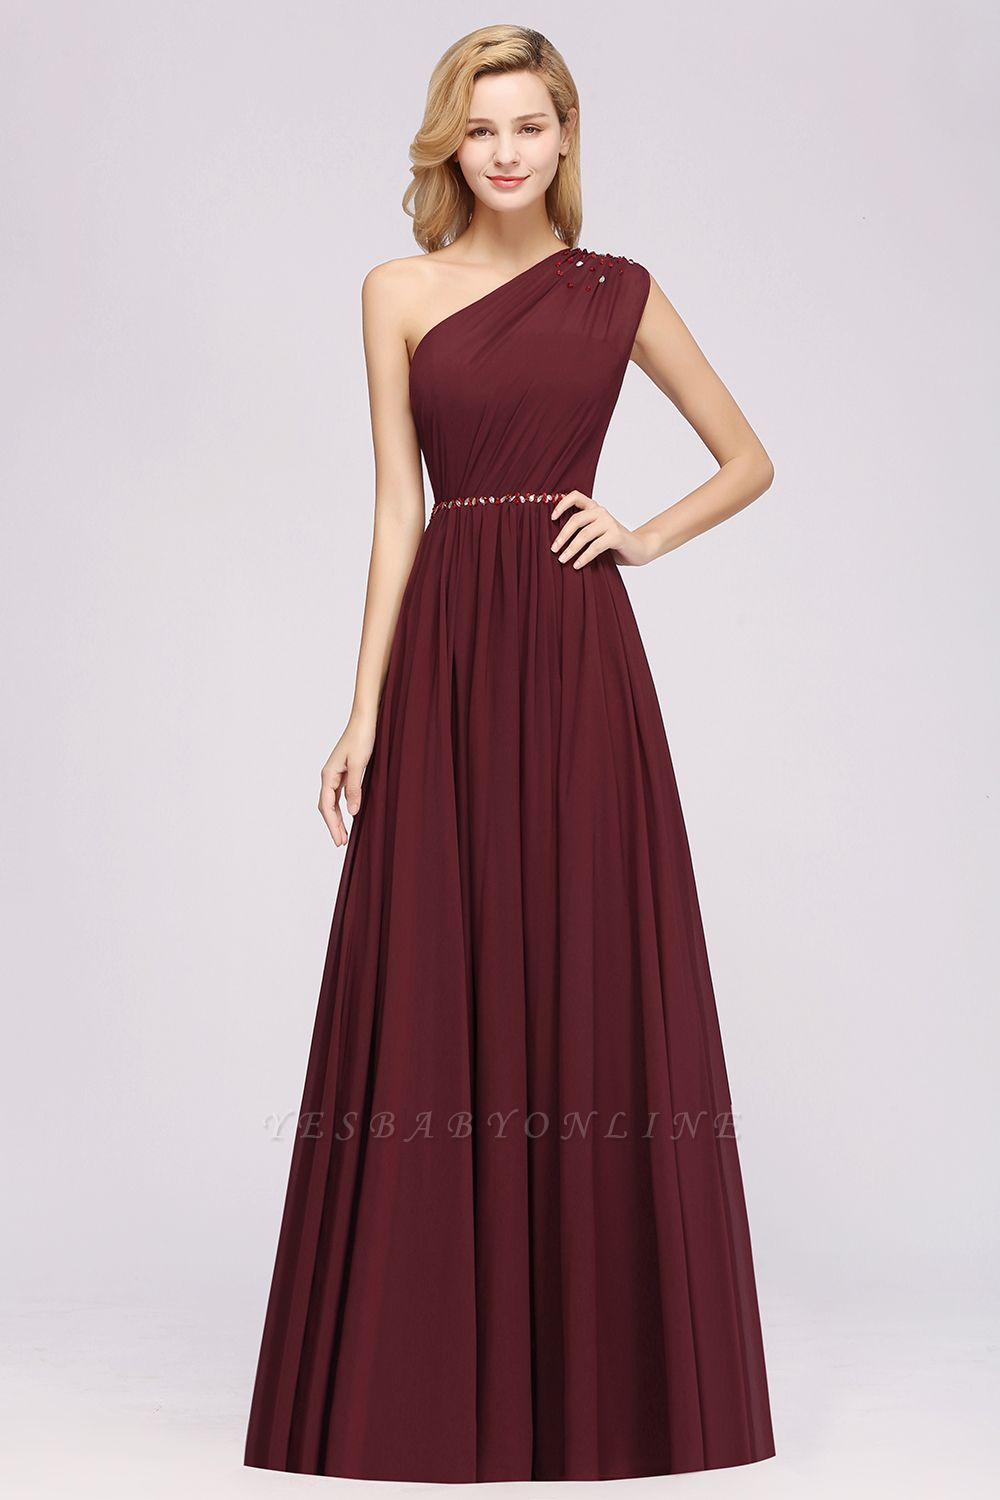 Fashion A-Line One-Shoulder Bridesmaid Dresses | Chiffon Sleeveless Beaded Wedding Party Dresses